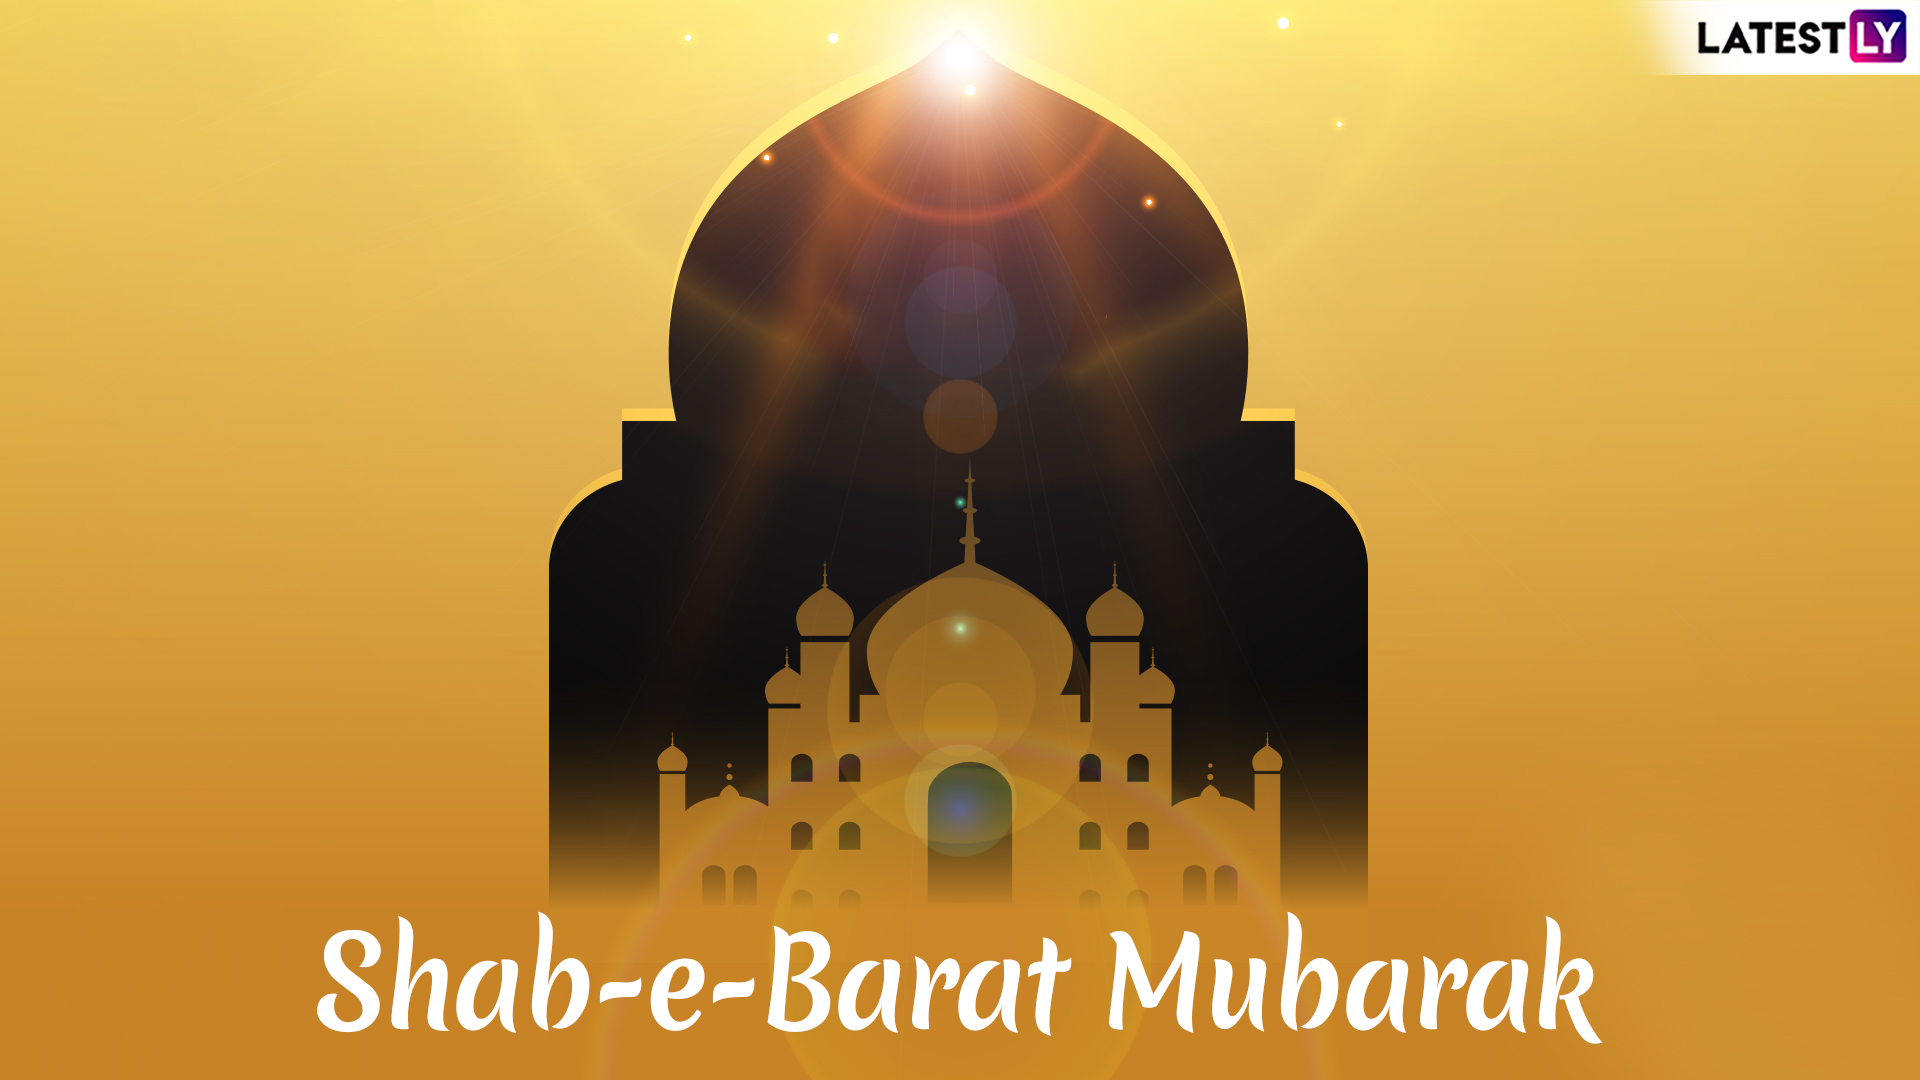 Happy Shab-e-Barat  IMAGES, GIF, ANIMATED GIF, WALLPAPER, STICKER FOR WHATSAPP & FACEBOOK